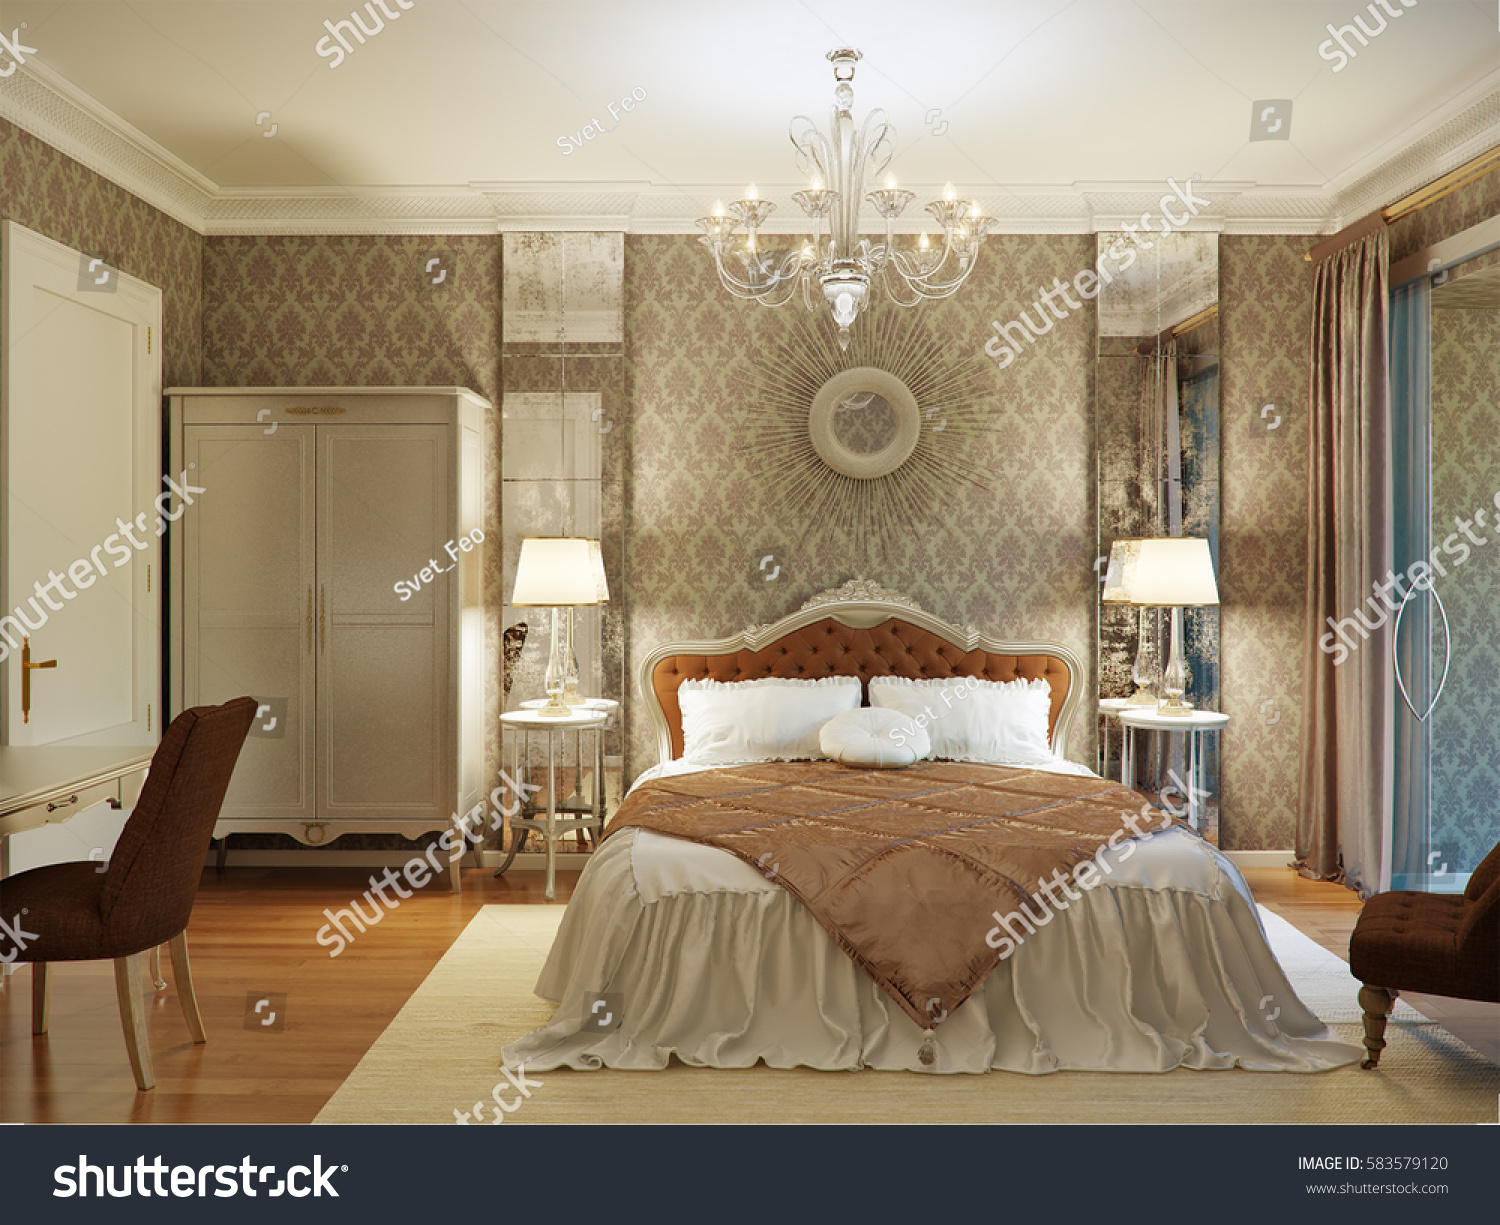 Luxury Classic Interior Design Bedroom Luxury bedroom interior design in classic style with aged mirrors, silvery  furniture and silk bedding